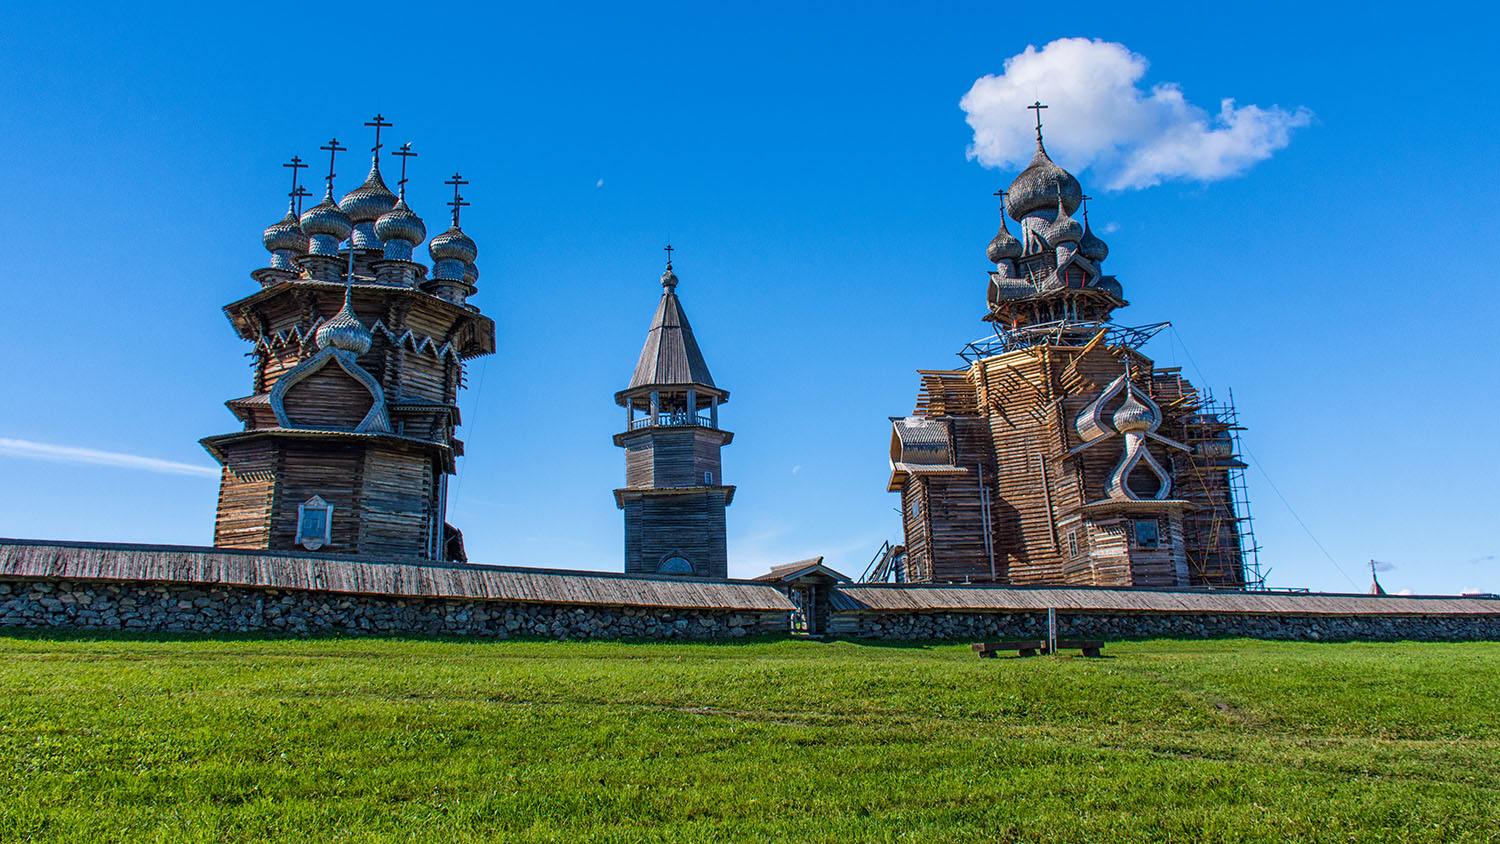 UNESCO World heritage site review: Kizhi Pogost